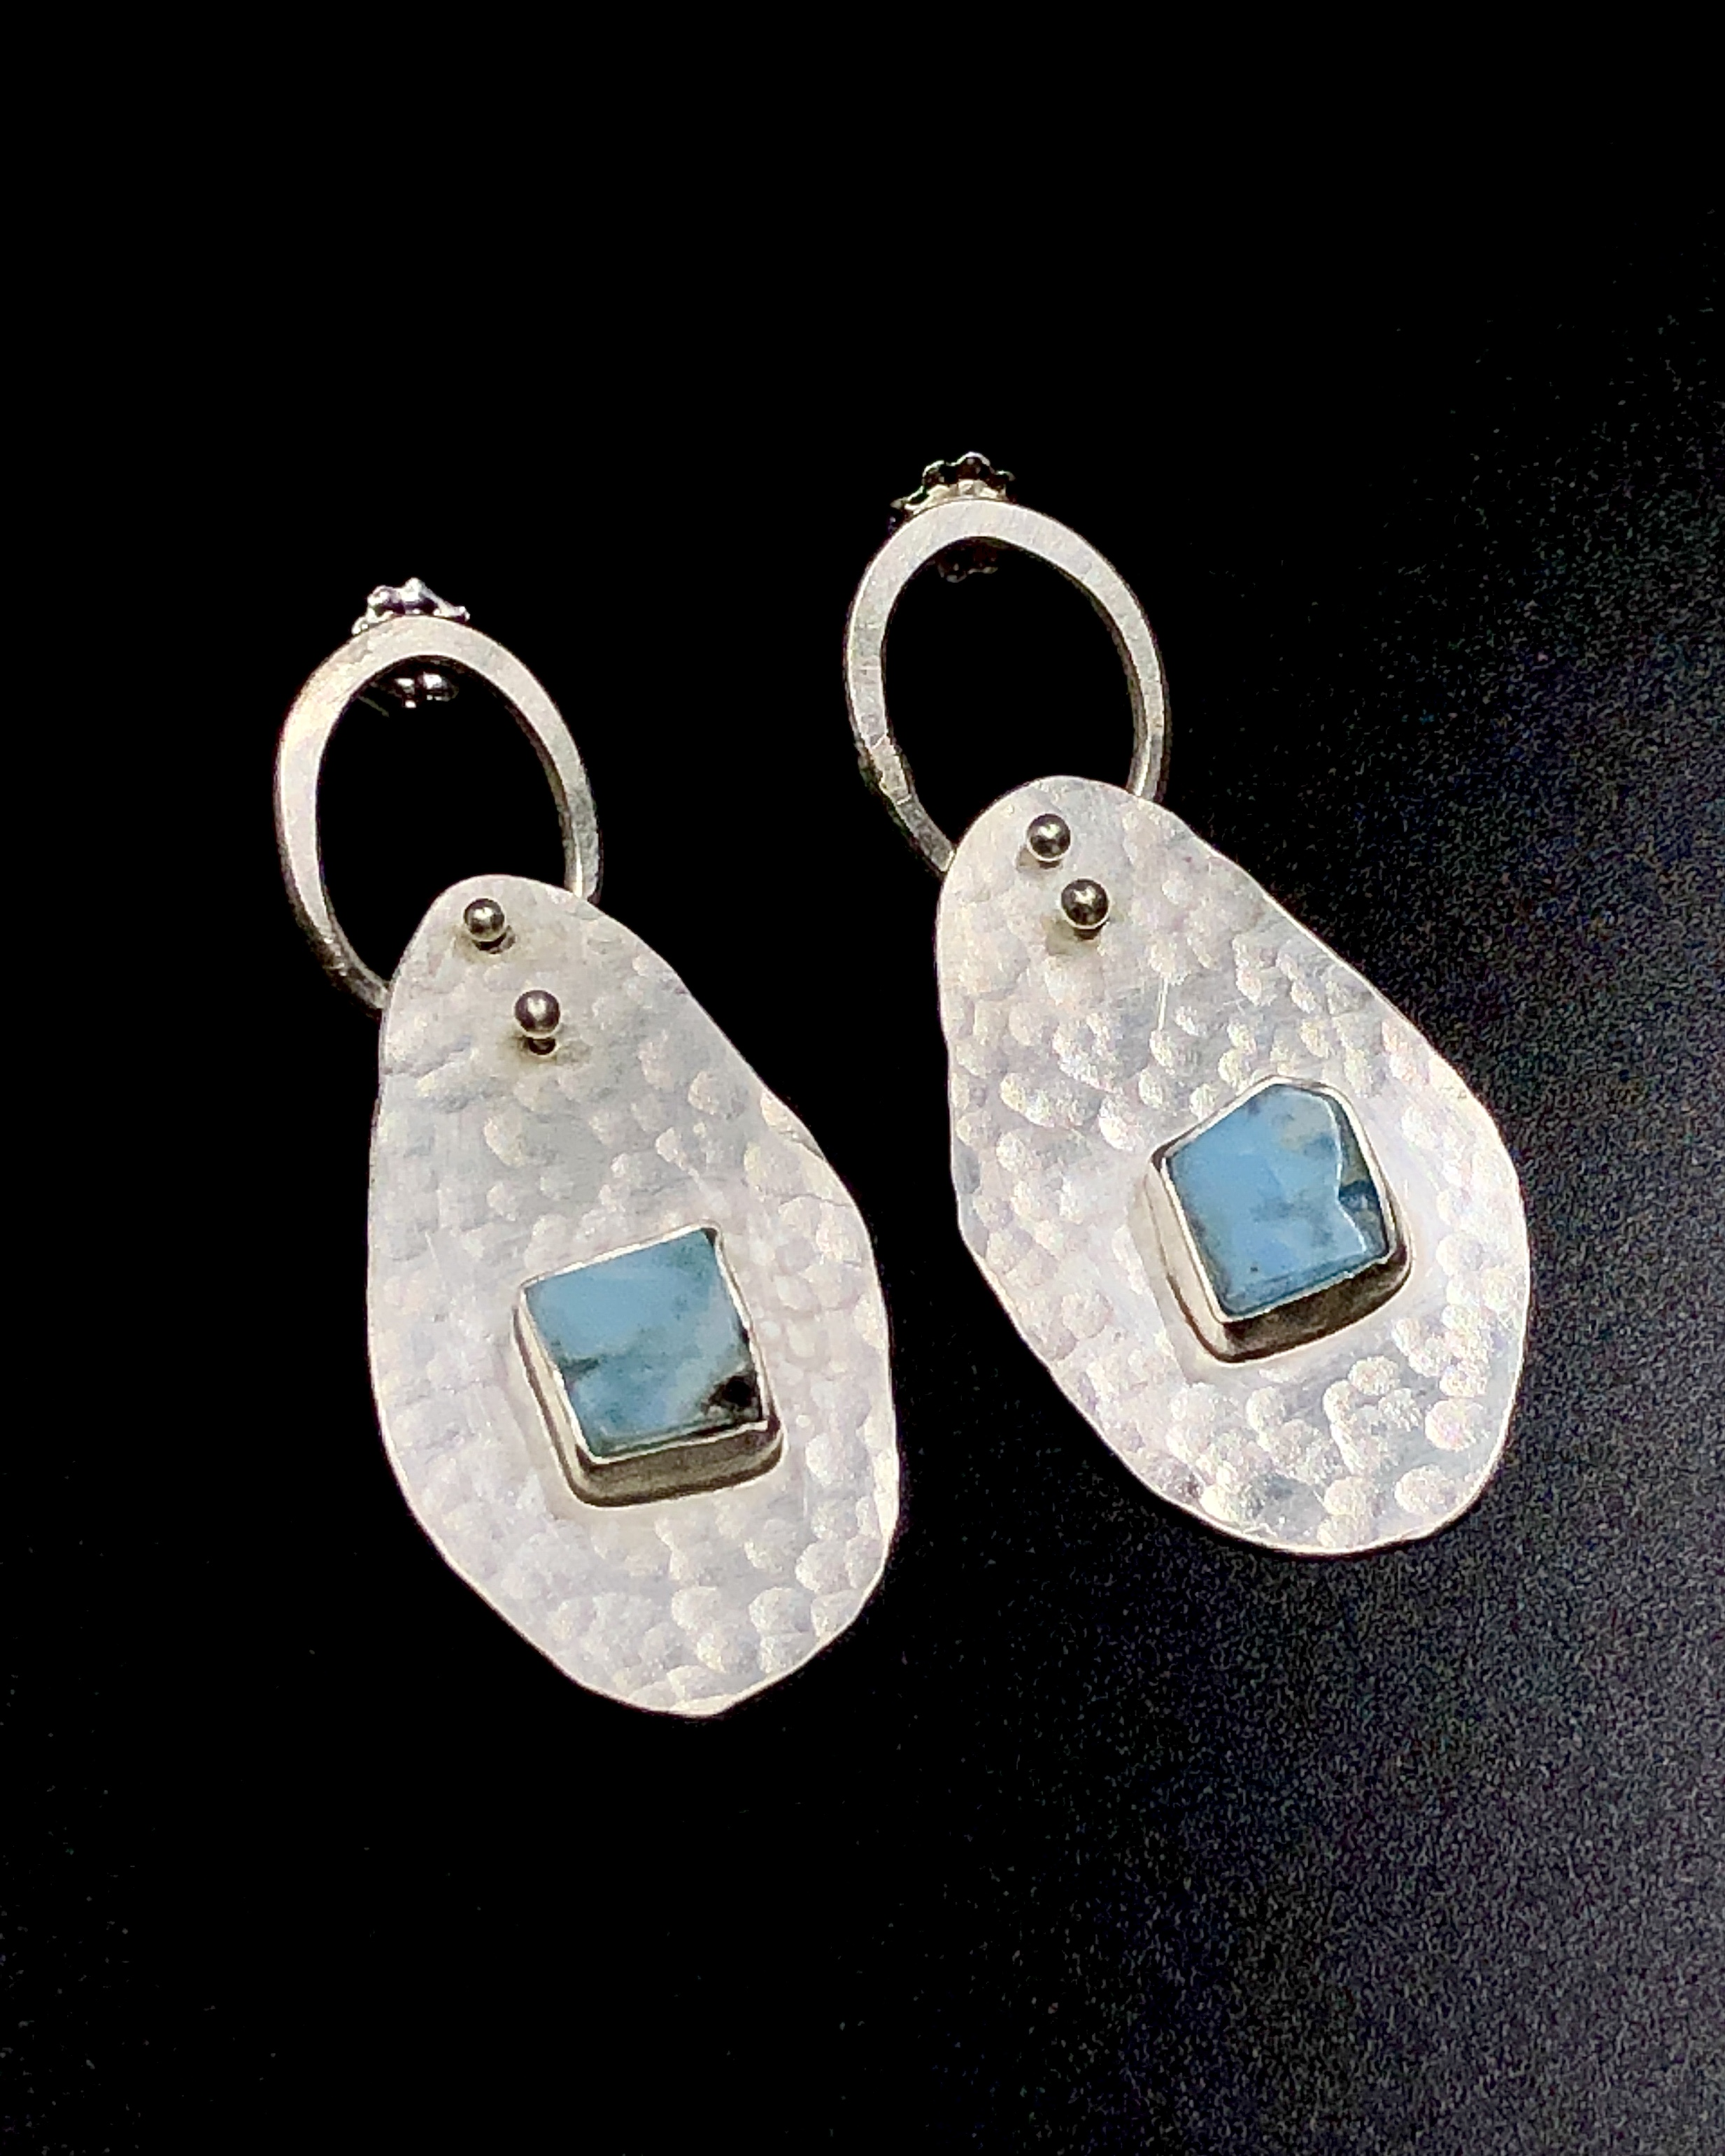 Paddle earrings